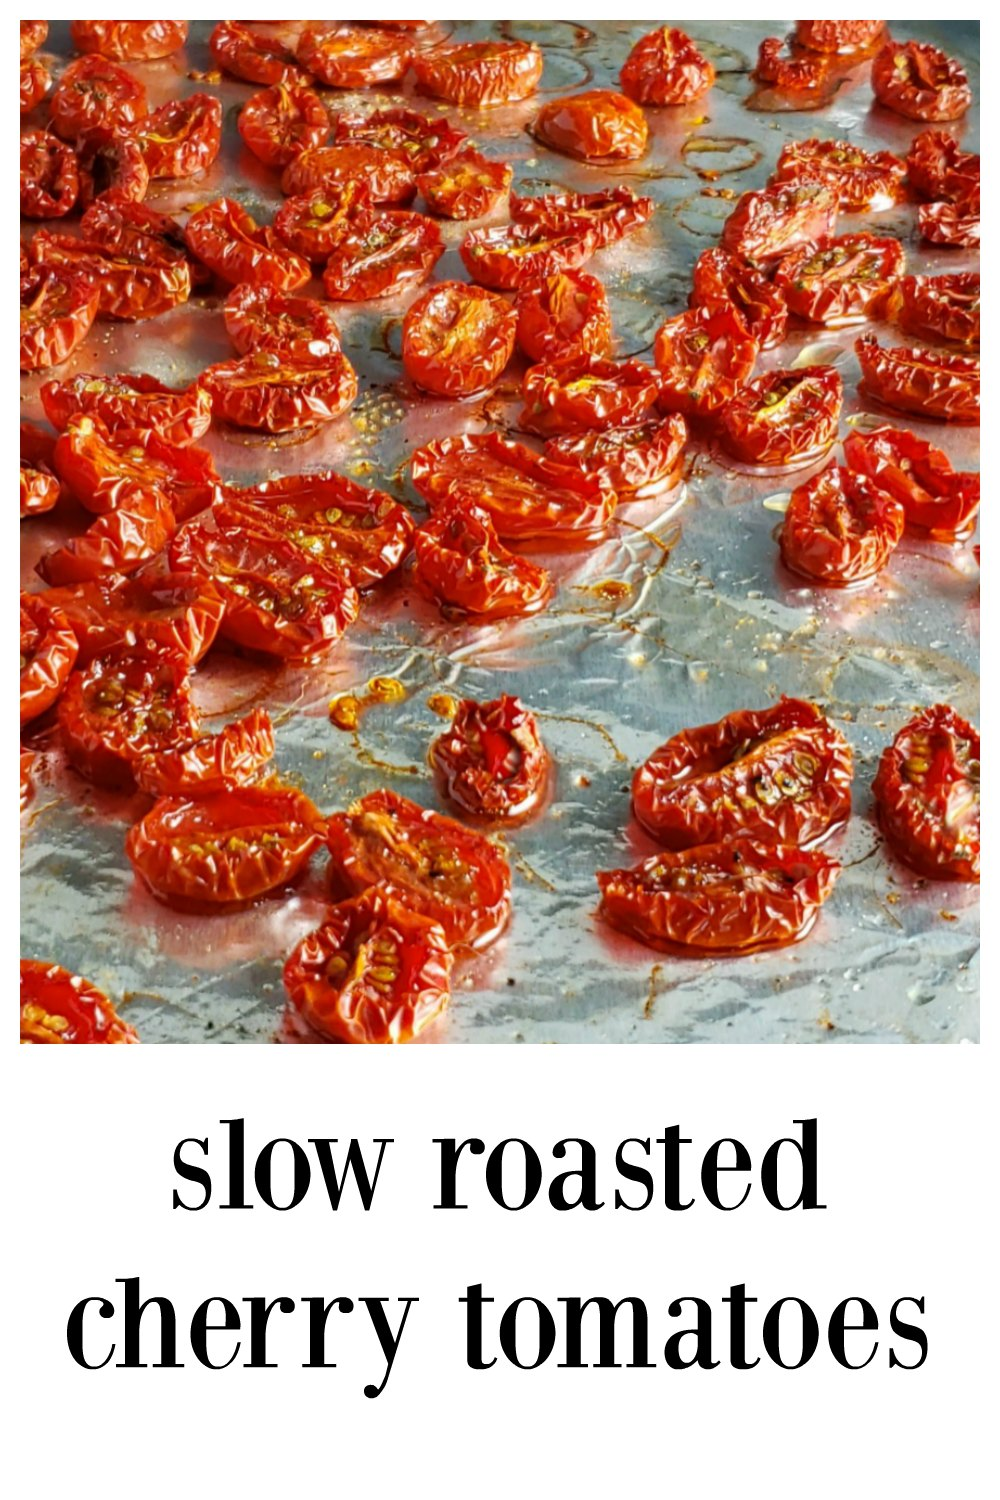 Slow Roasted Cherry Tomatoes are addictive! These little flavor bombs are addictive so you'll need to make extra for recipes coz you'll want to snack on them! Luckily they're super easy and so much faster to make than their larger counterparts! Advice on cutting and seasoning. #SlowRoastedCherryTomatoes #CherryTomatoes #Tomatoes